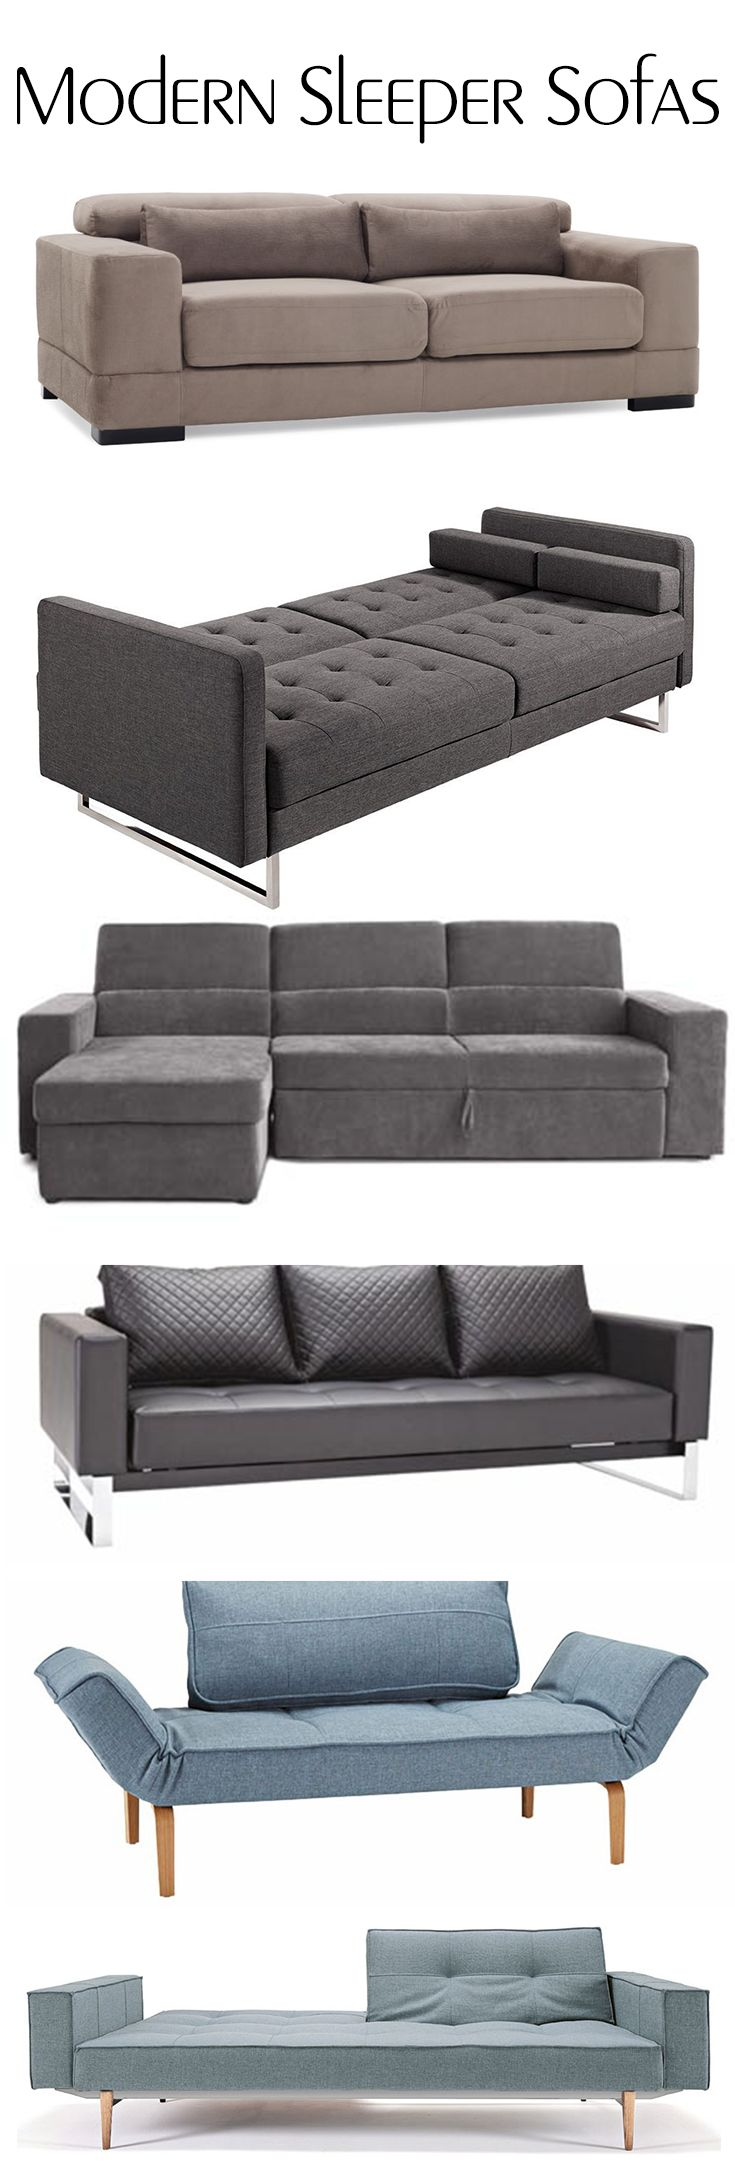 Premium quality designer furniture showroom to see touch and feel our - A Sleeper Sofa Is The Perfect Way To Give Your Guests Extra Comfort While Utilizing Your